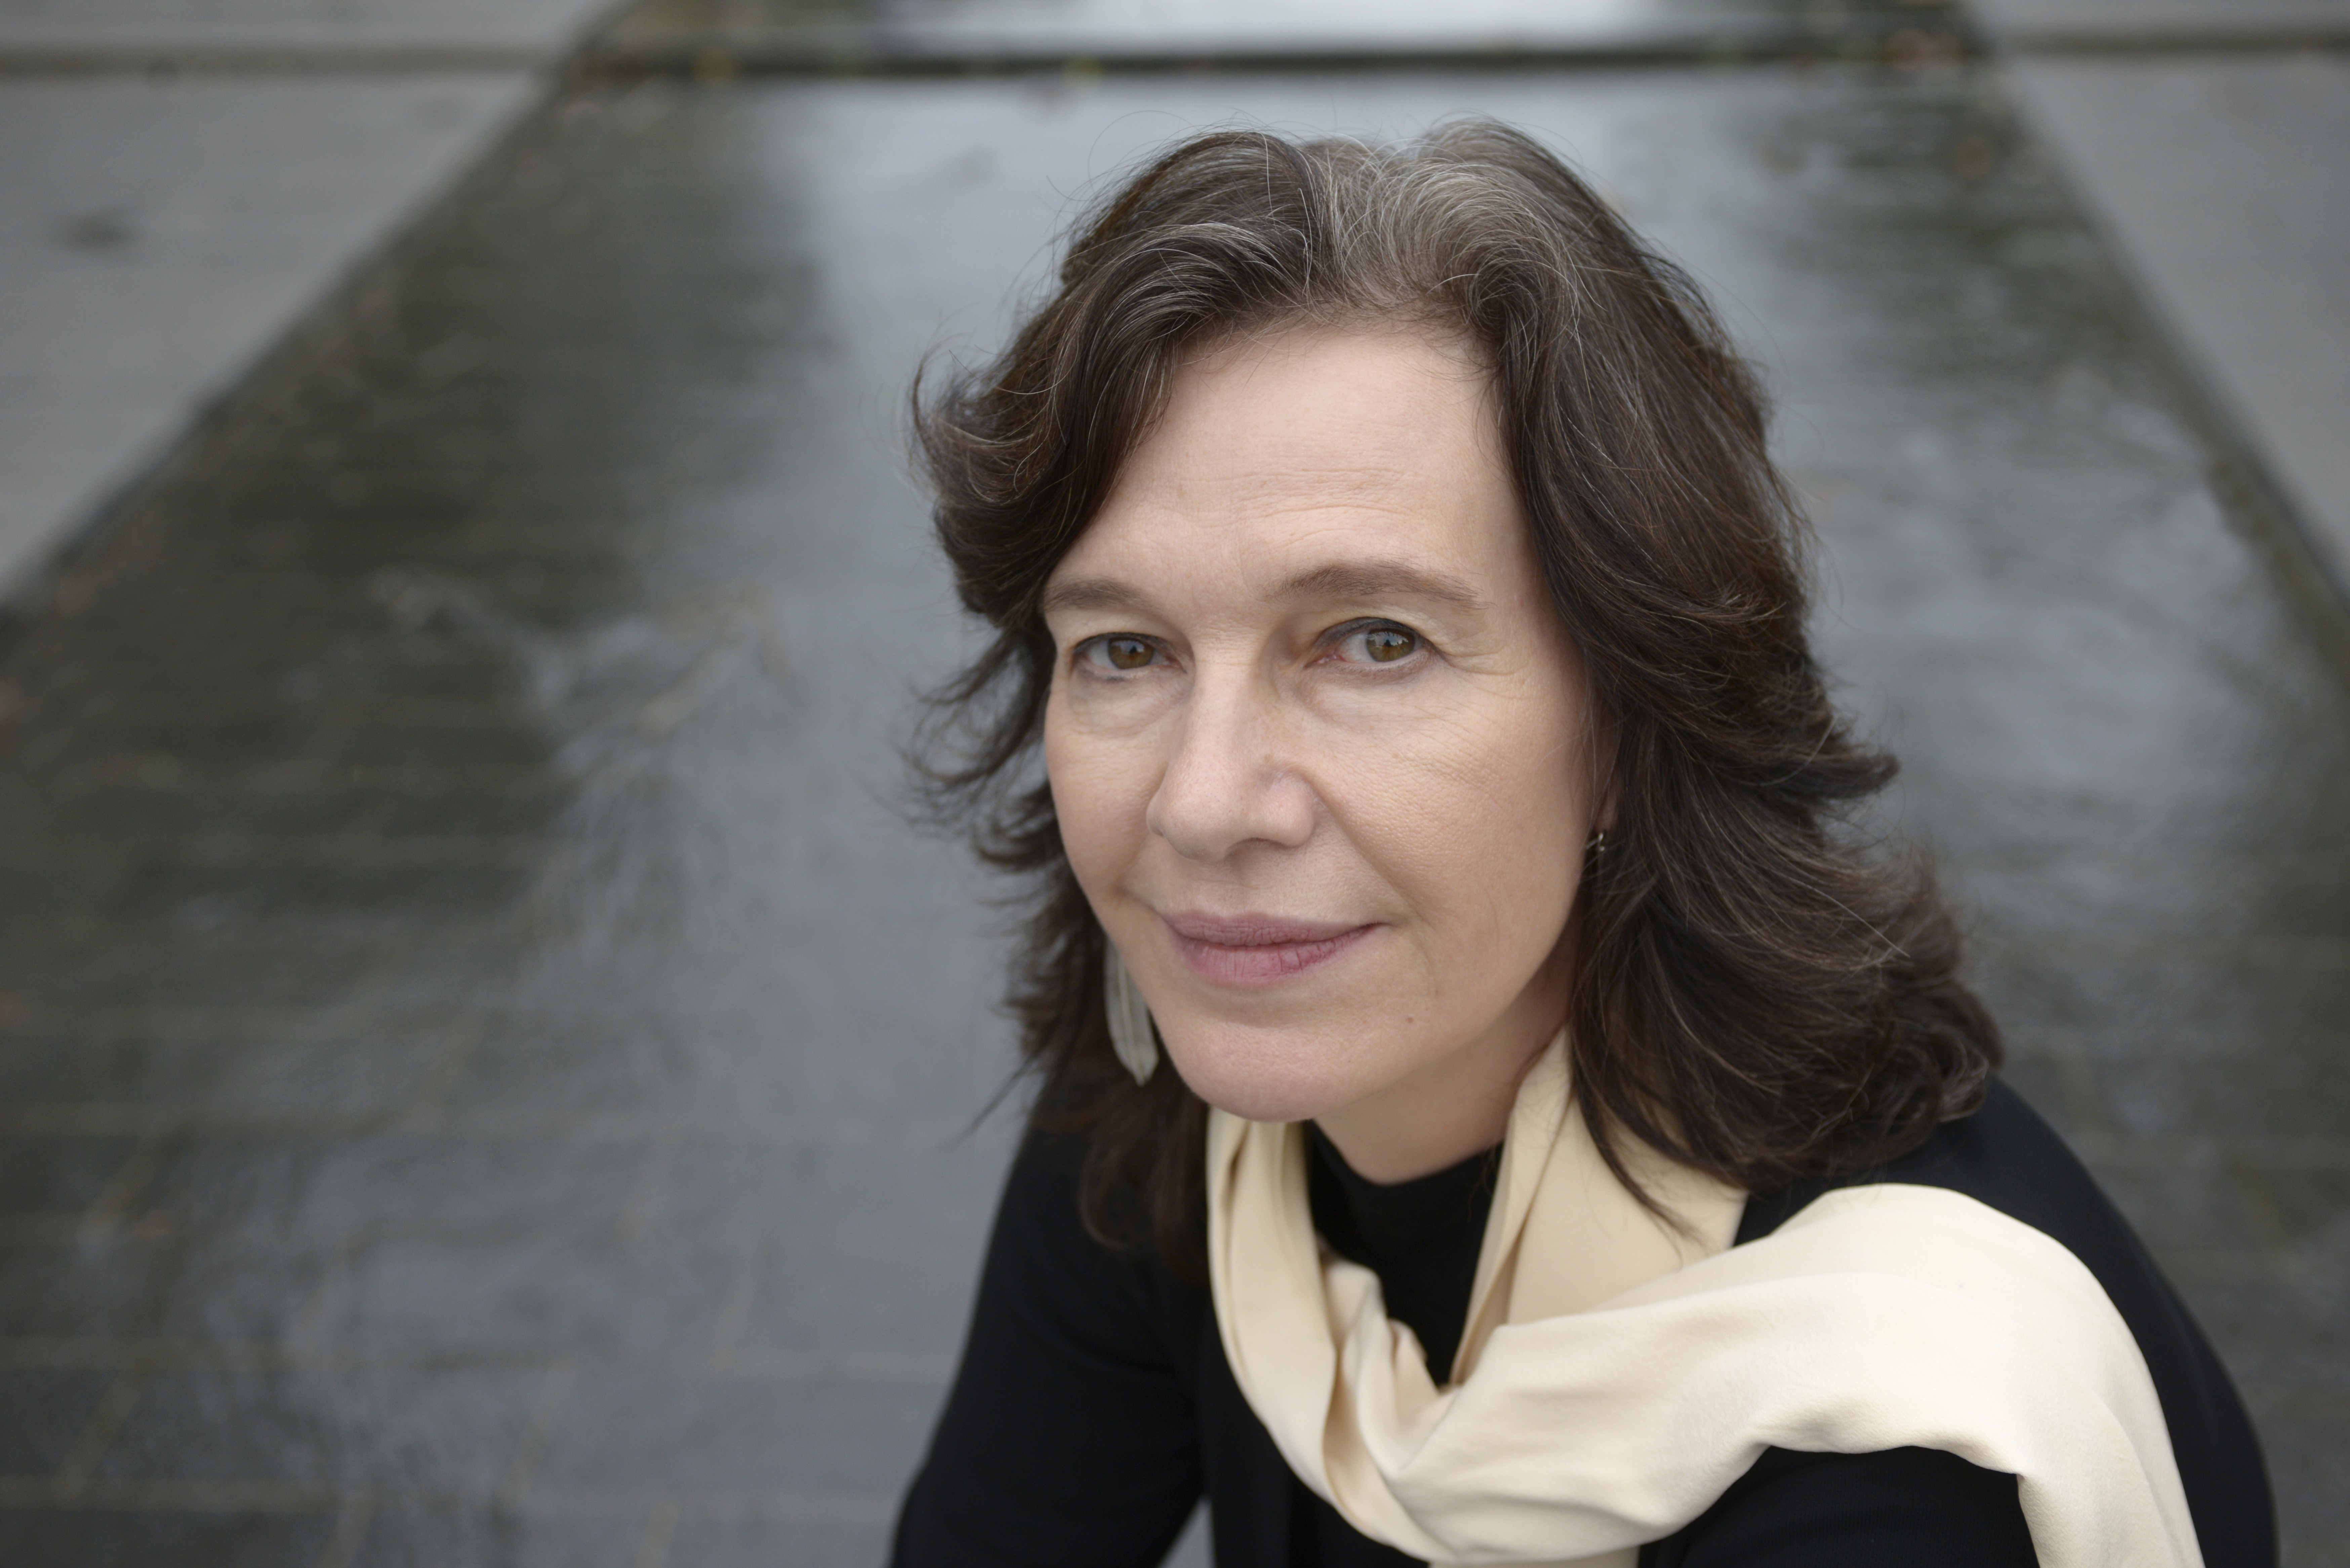 Writer Louise Erdrich on Sept. 23, 2012 in Paris, France.